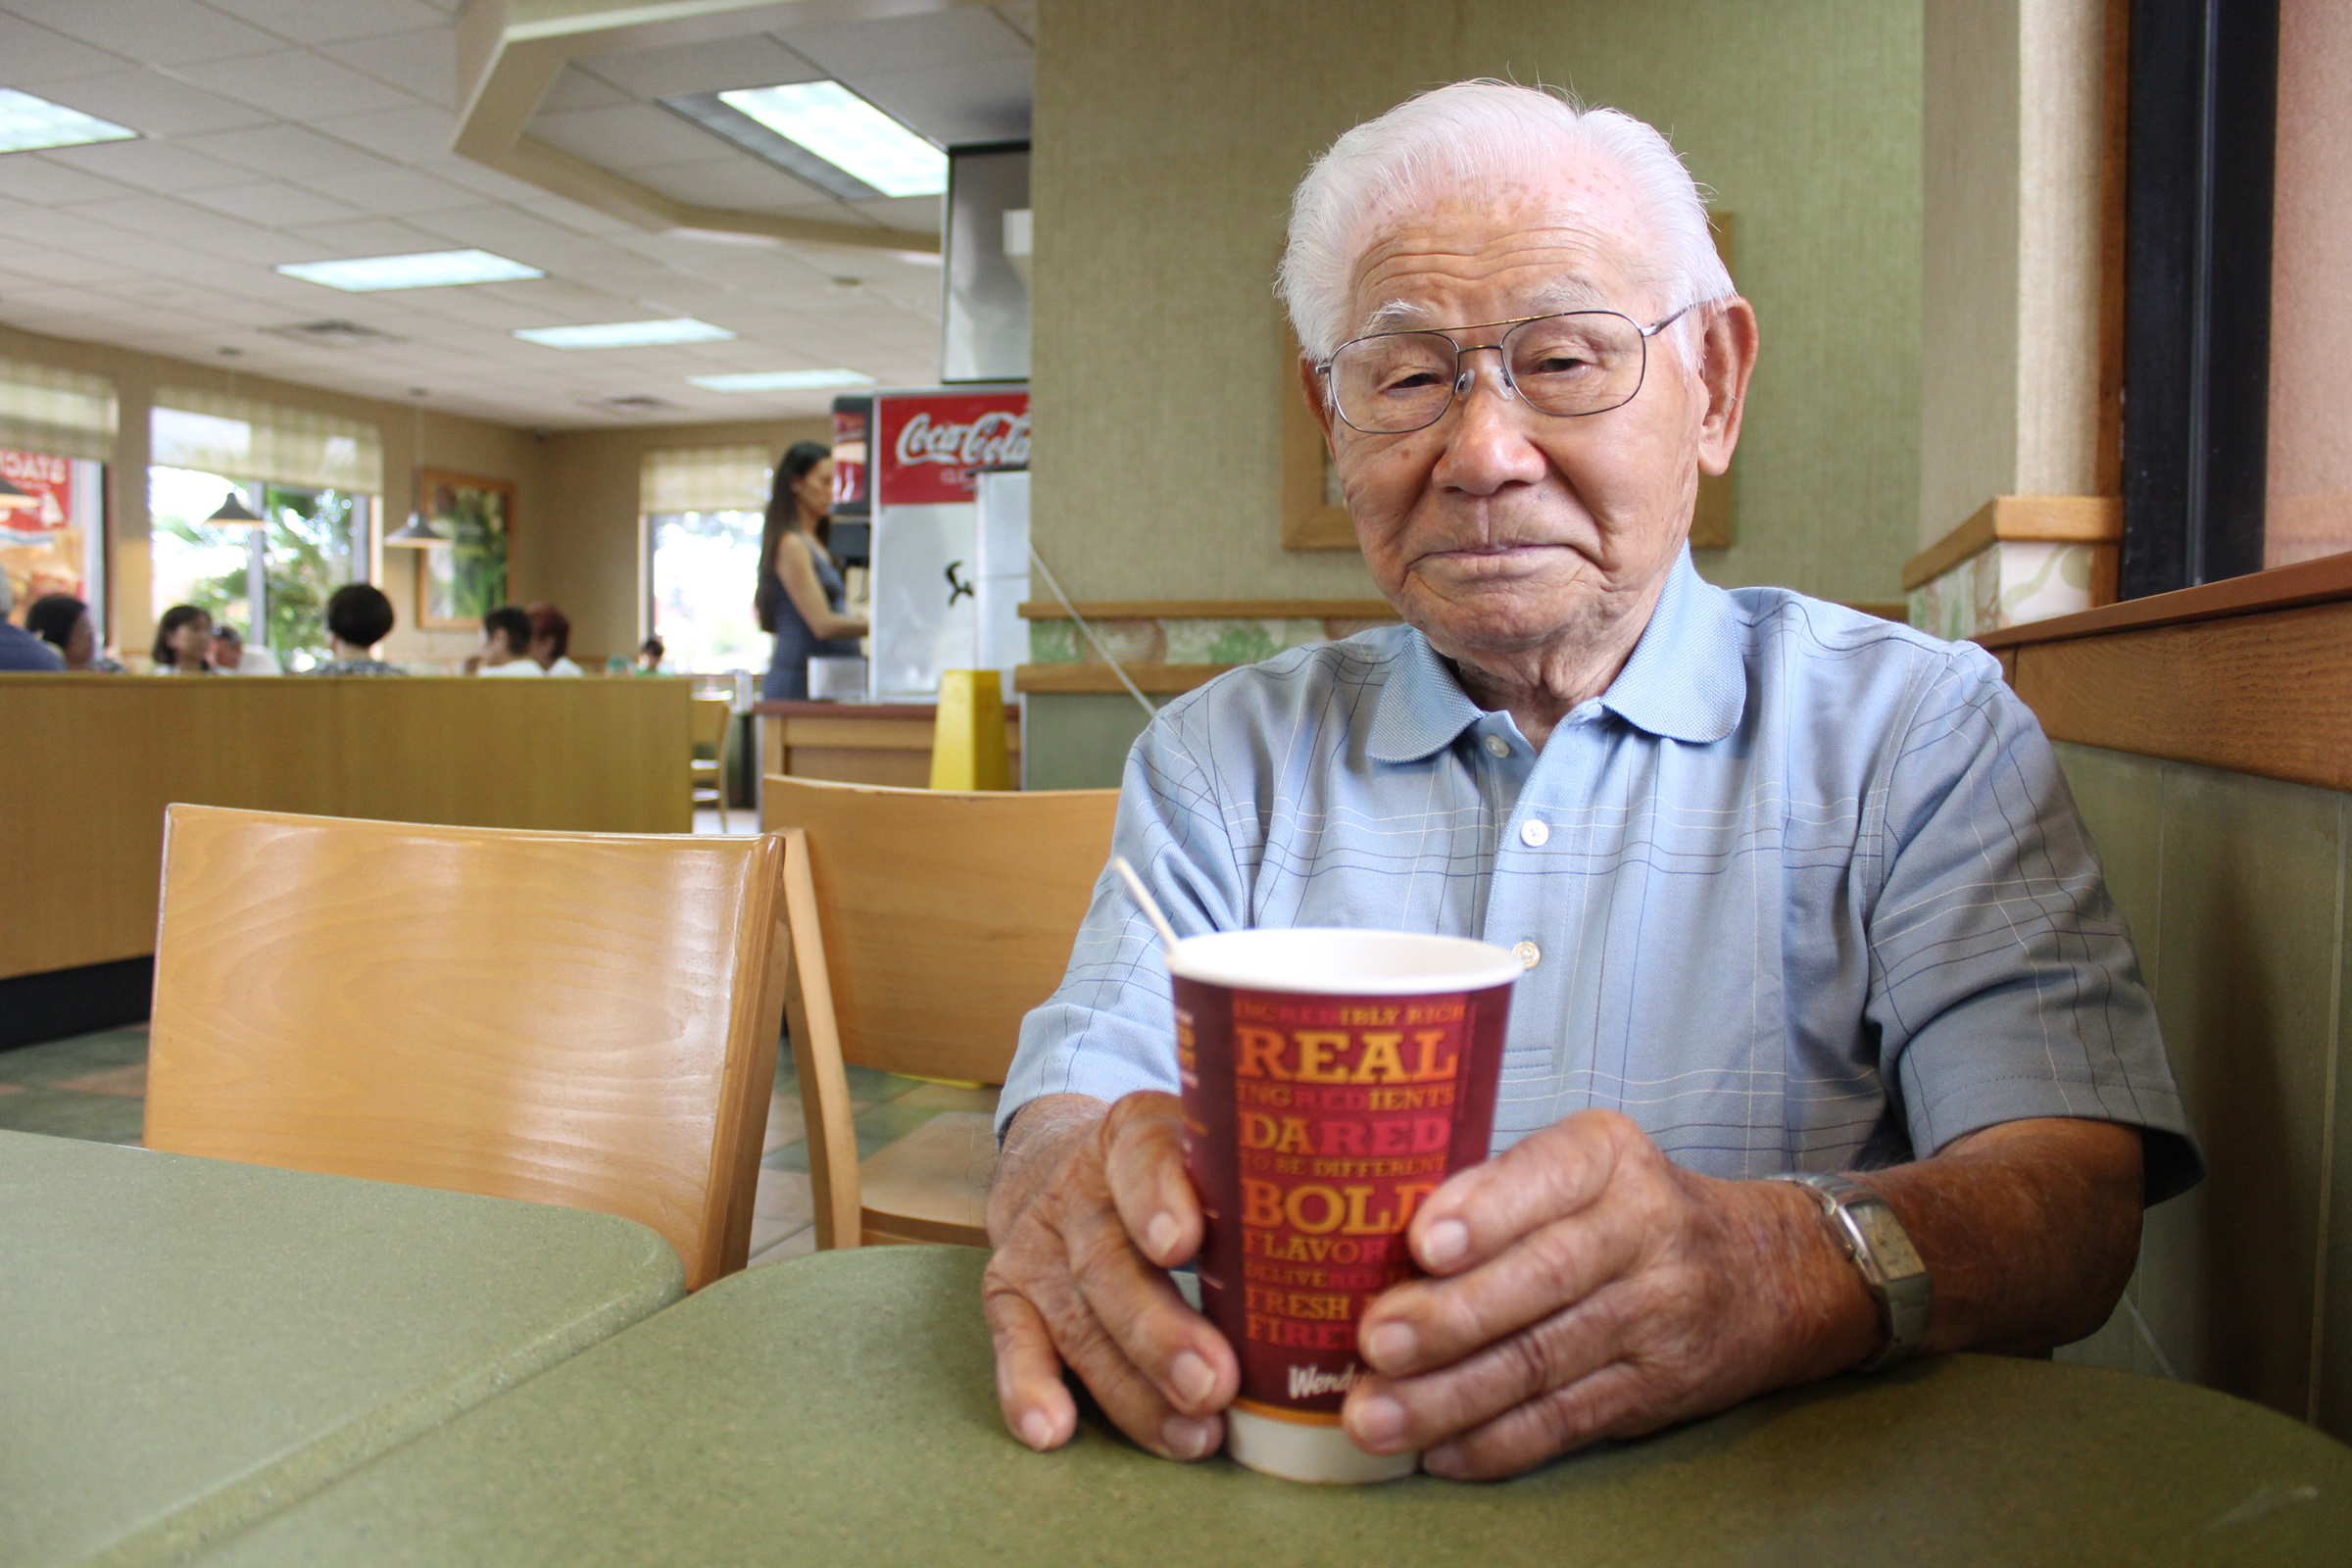 Centenarian Dr. Seiya Ohata enjoying a cup of coffee at the Wendy's in Kahului recently. (Photo by Colleen Uechi)